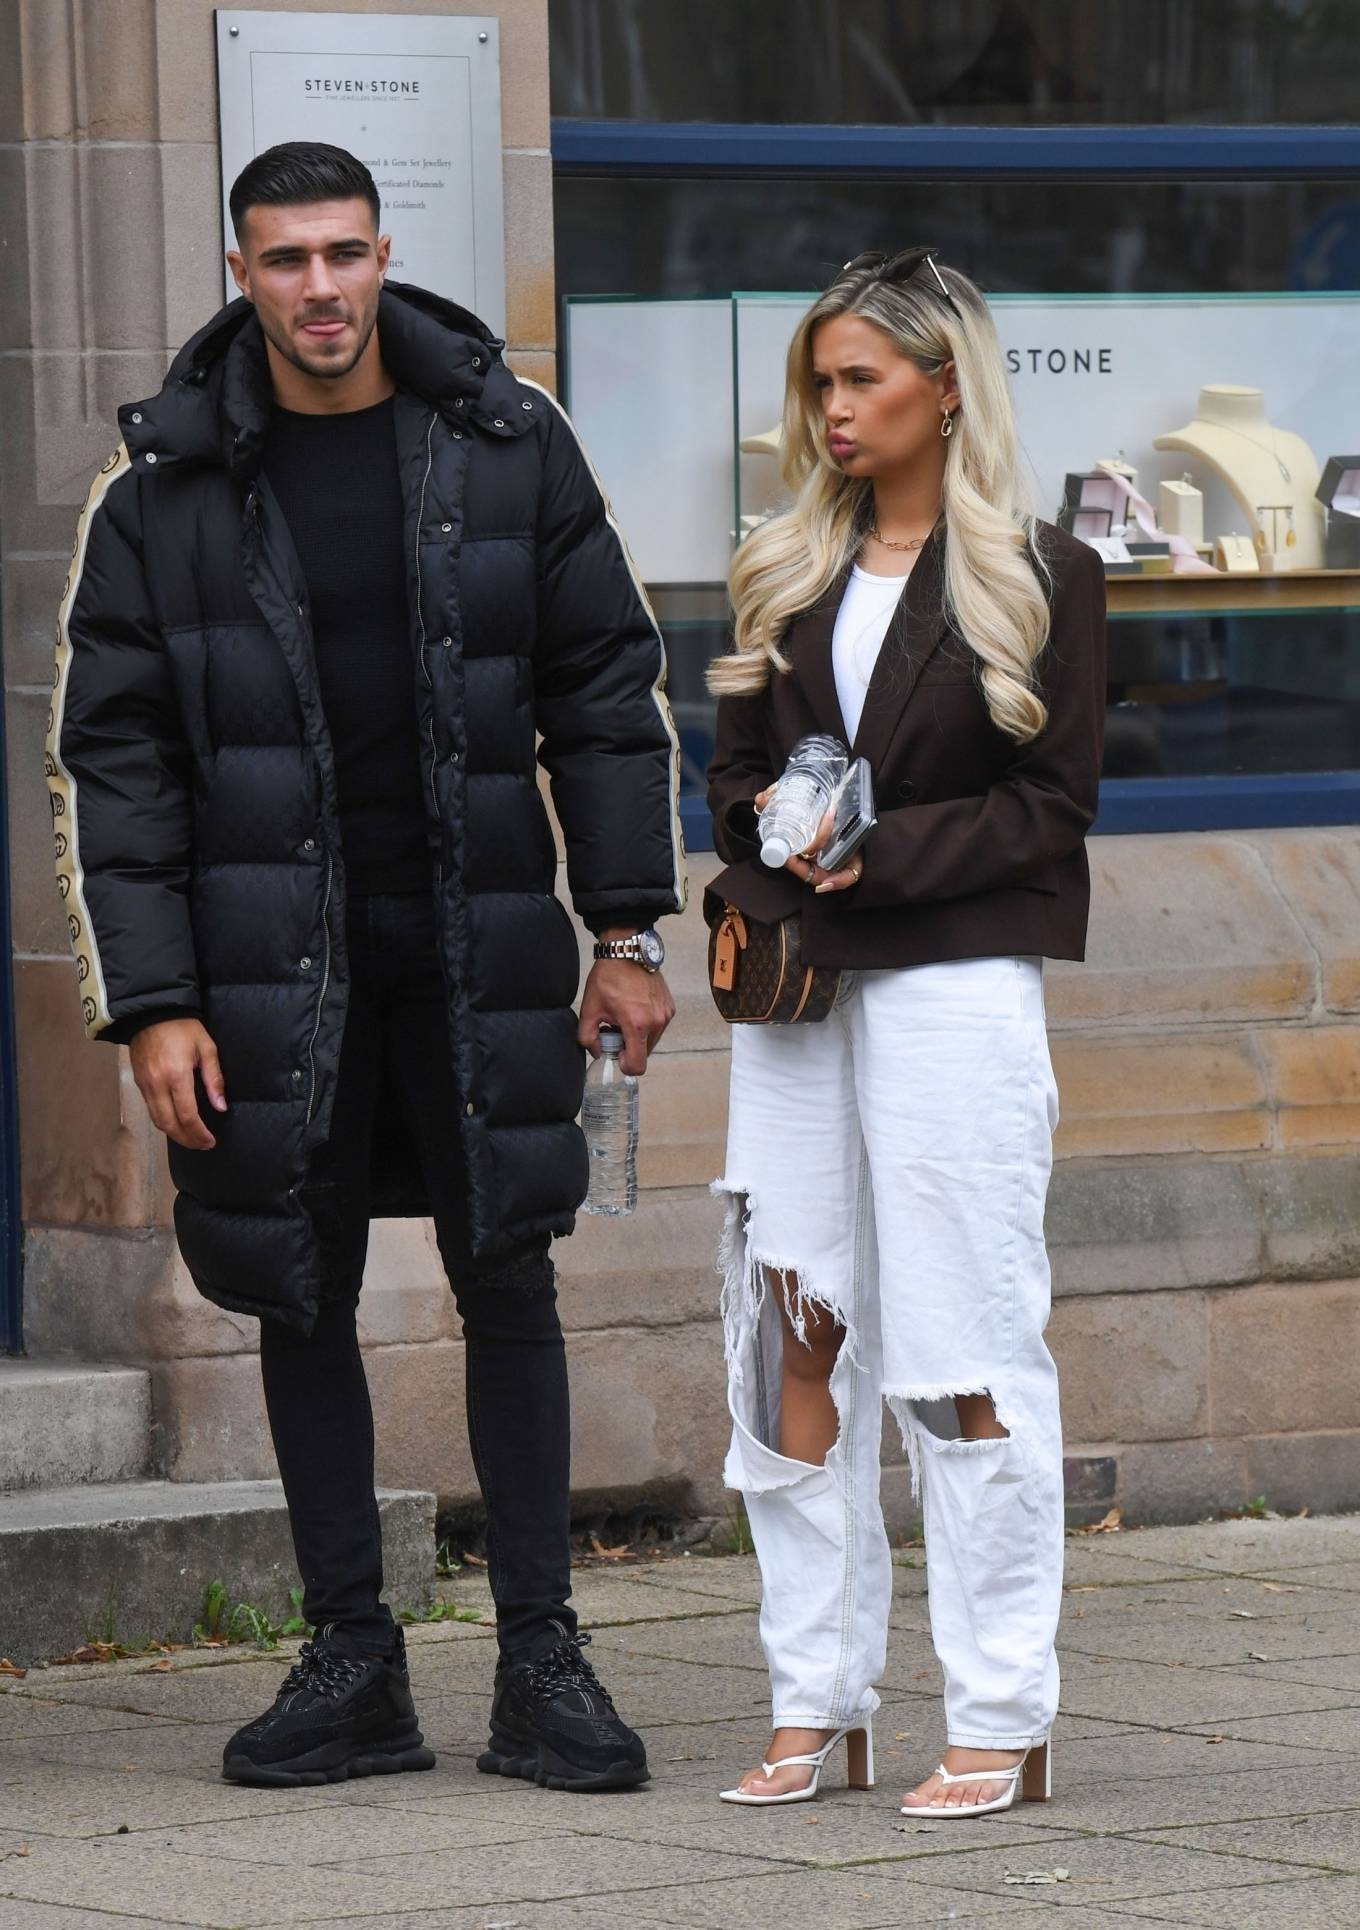 Molly-Mae Hague 2020 : Molly-Mae Hague and Tommy Fury – Seen while out in Cheshire -03